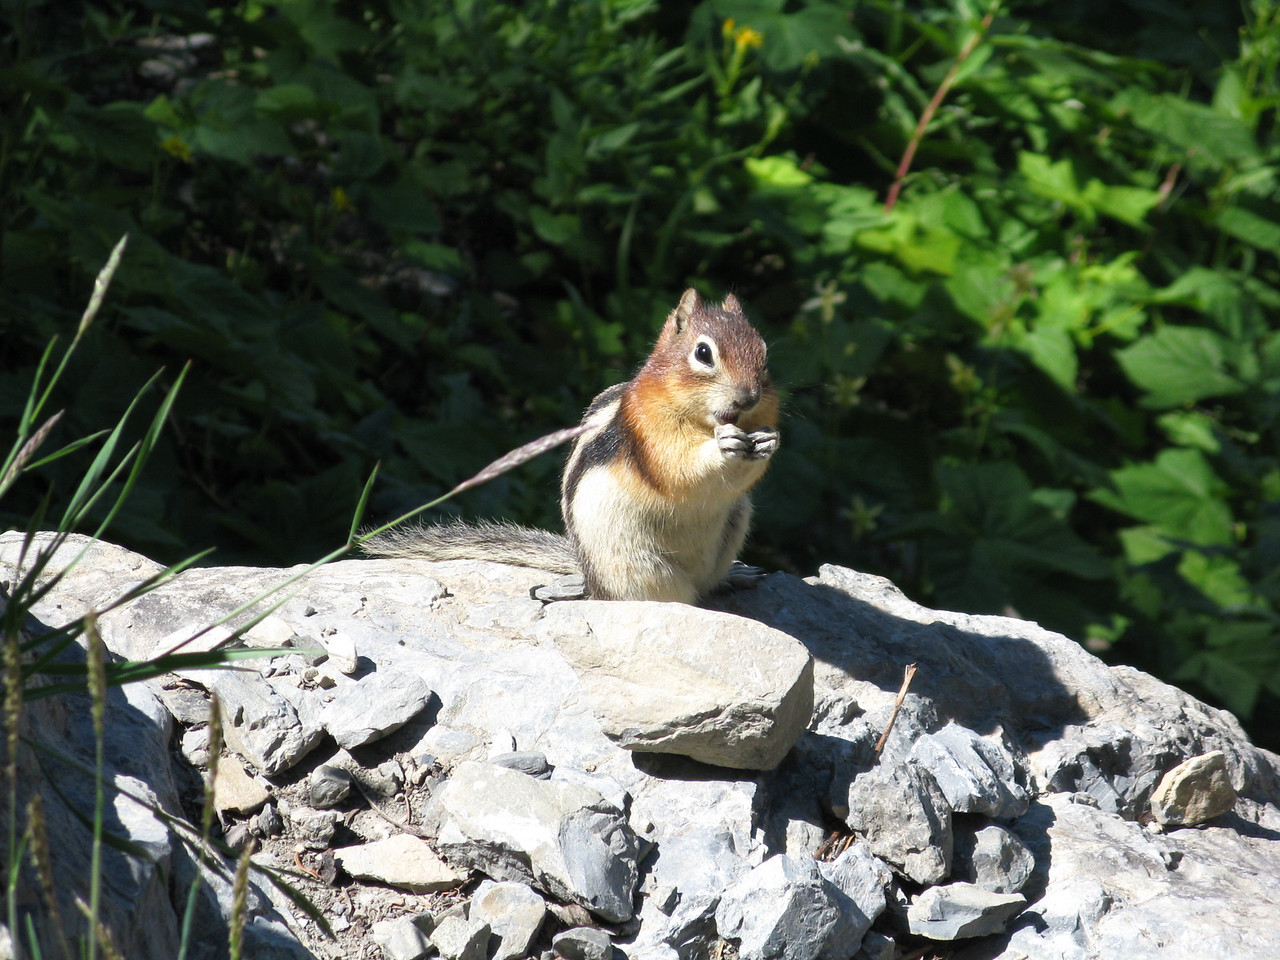 This little fellow has stripes on his back and I think that makes him a chipmunk, although he was pretty big.